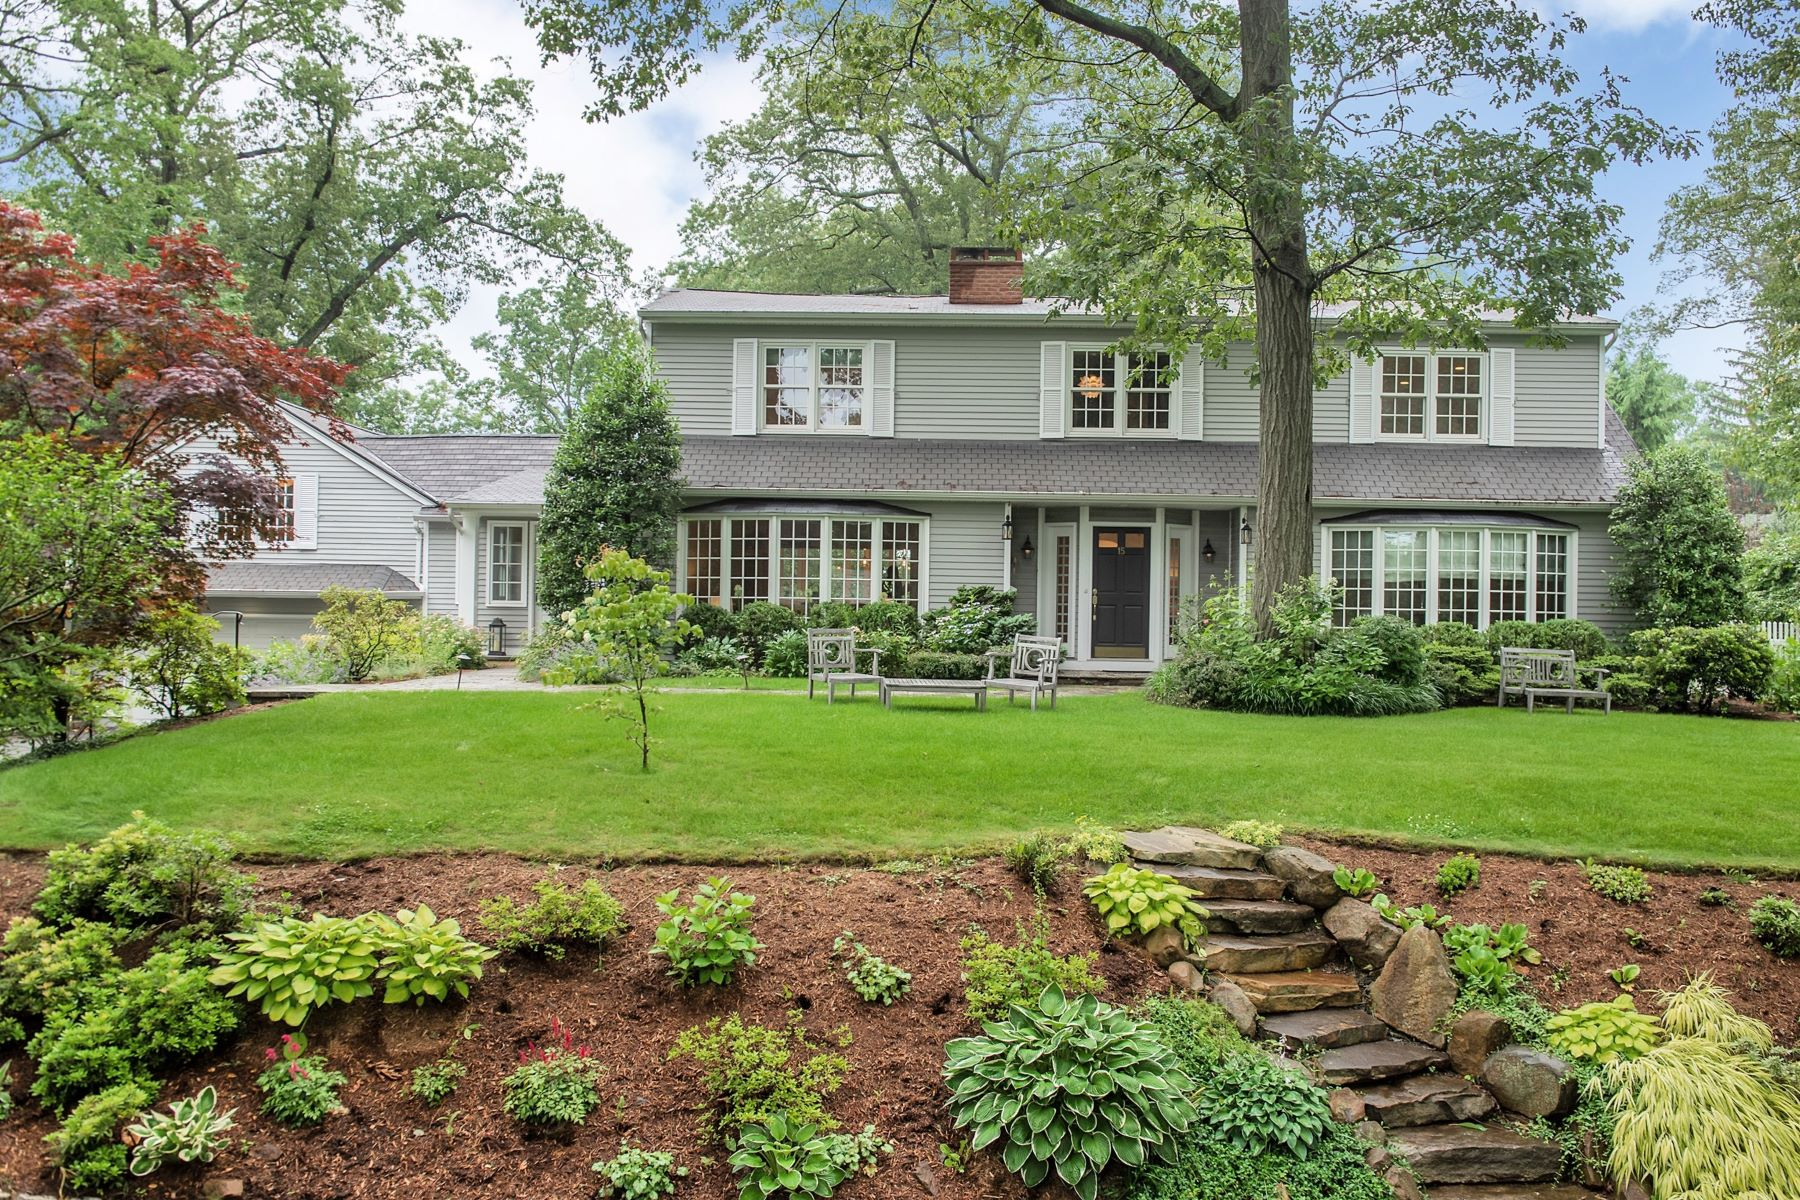 Single Family Homes for Sale at Stunning Colonial 15 Manor Hill Road Summit, New Jersey 07901 United States